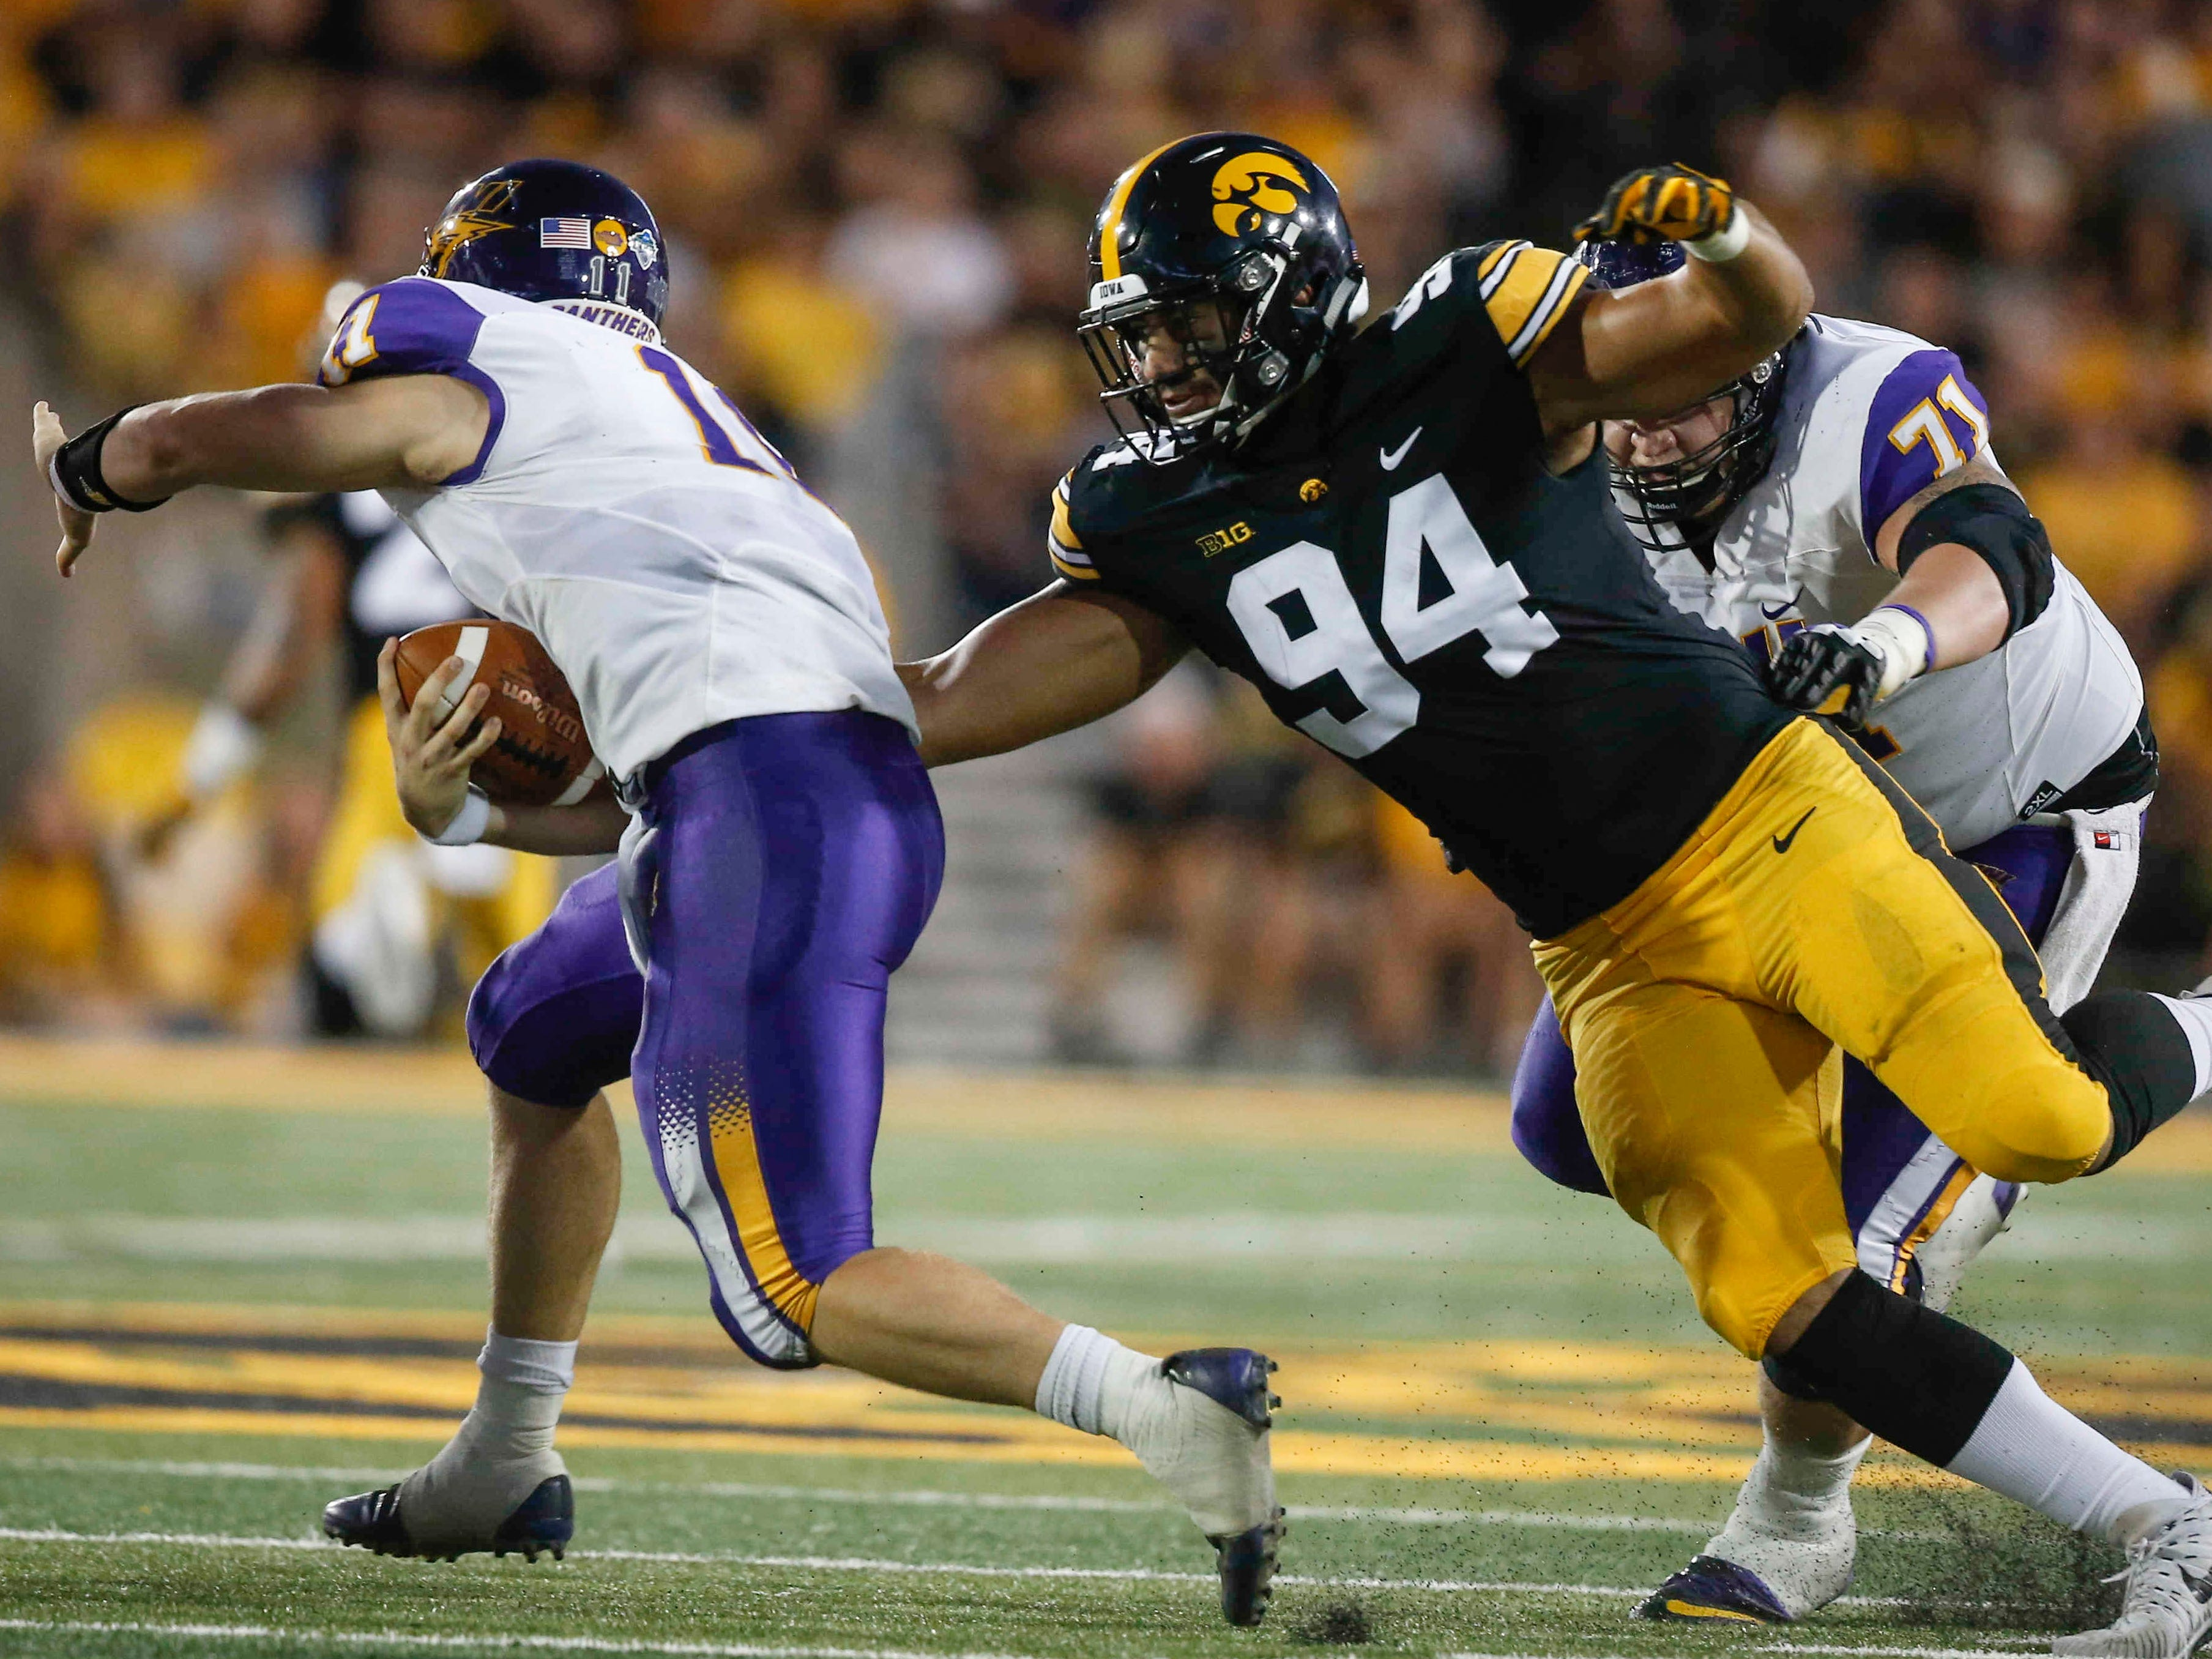 Iowa right end A.J. Epenesa catches Northern Iowa quarterback Colton Howell on Saturday, Sept. 15, 2018, at Kinnick Stadium in Iowa City.